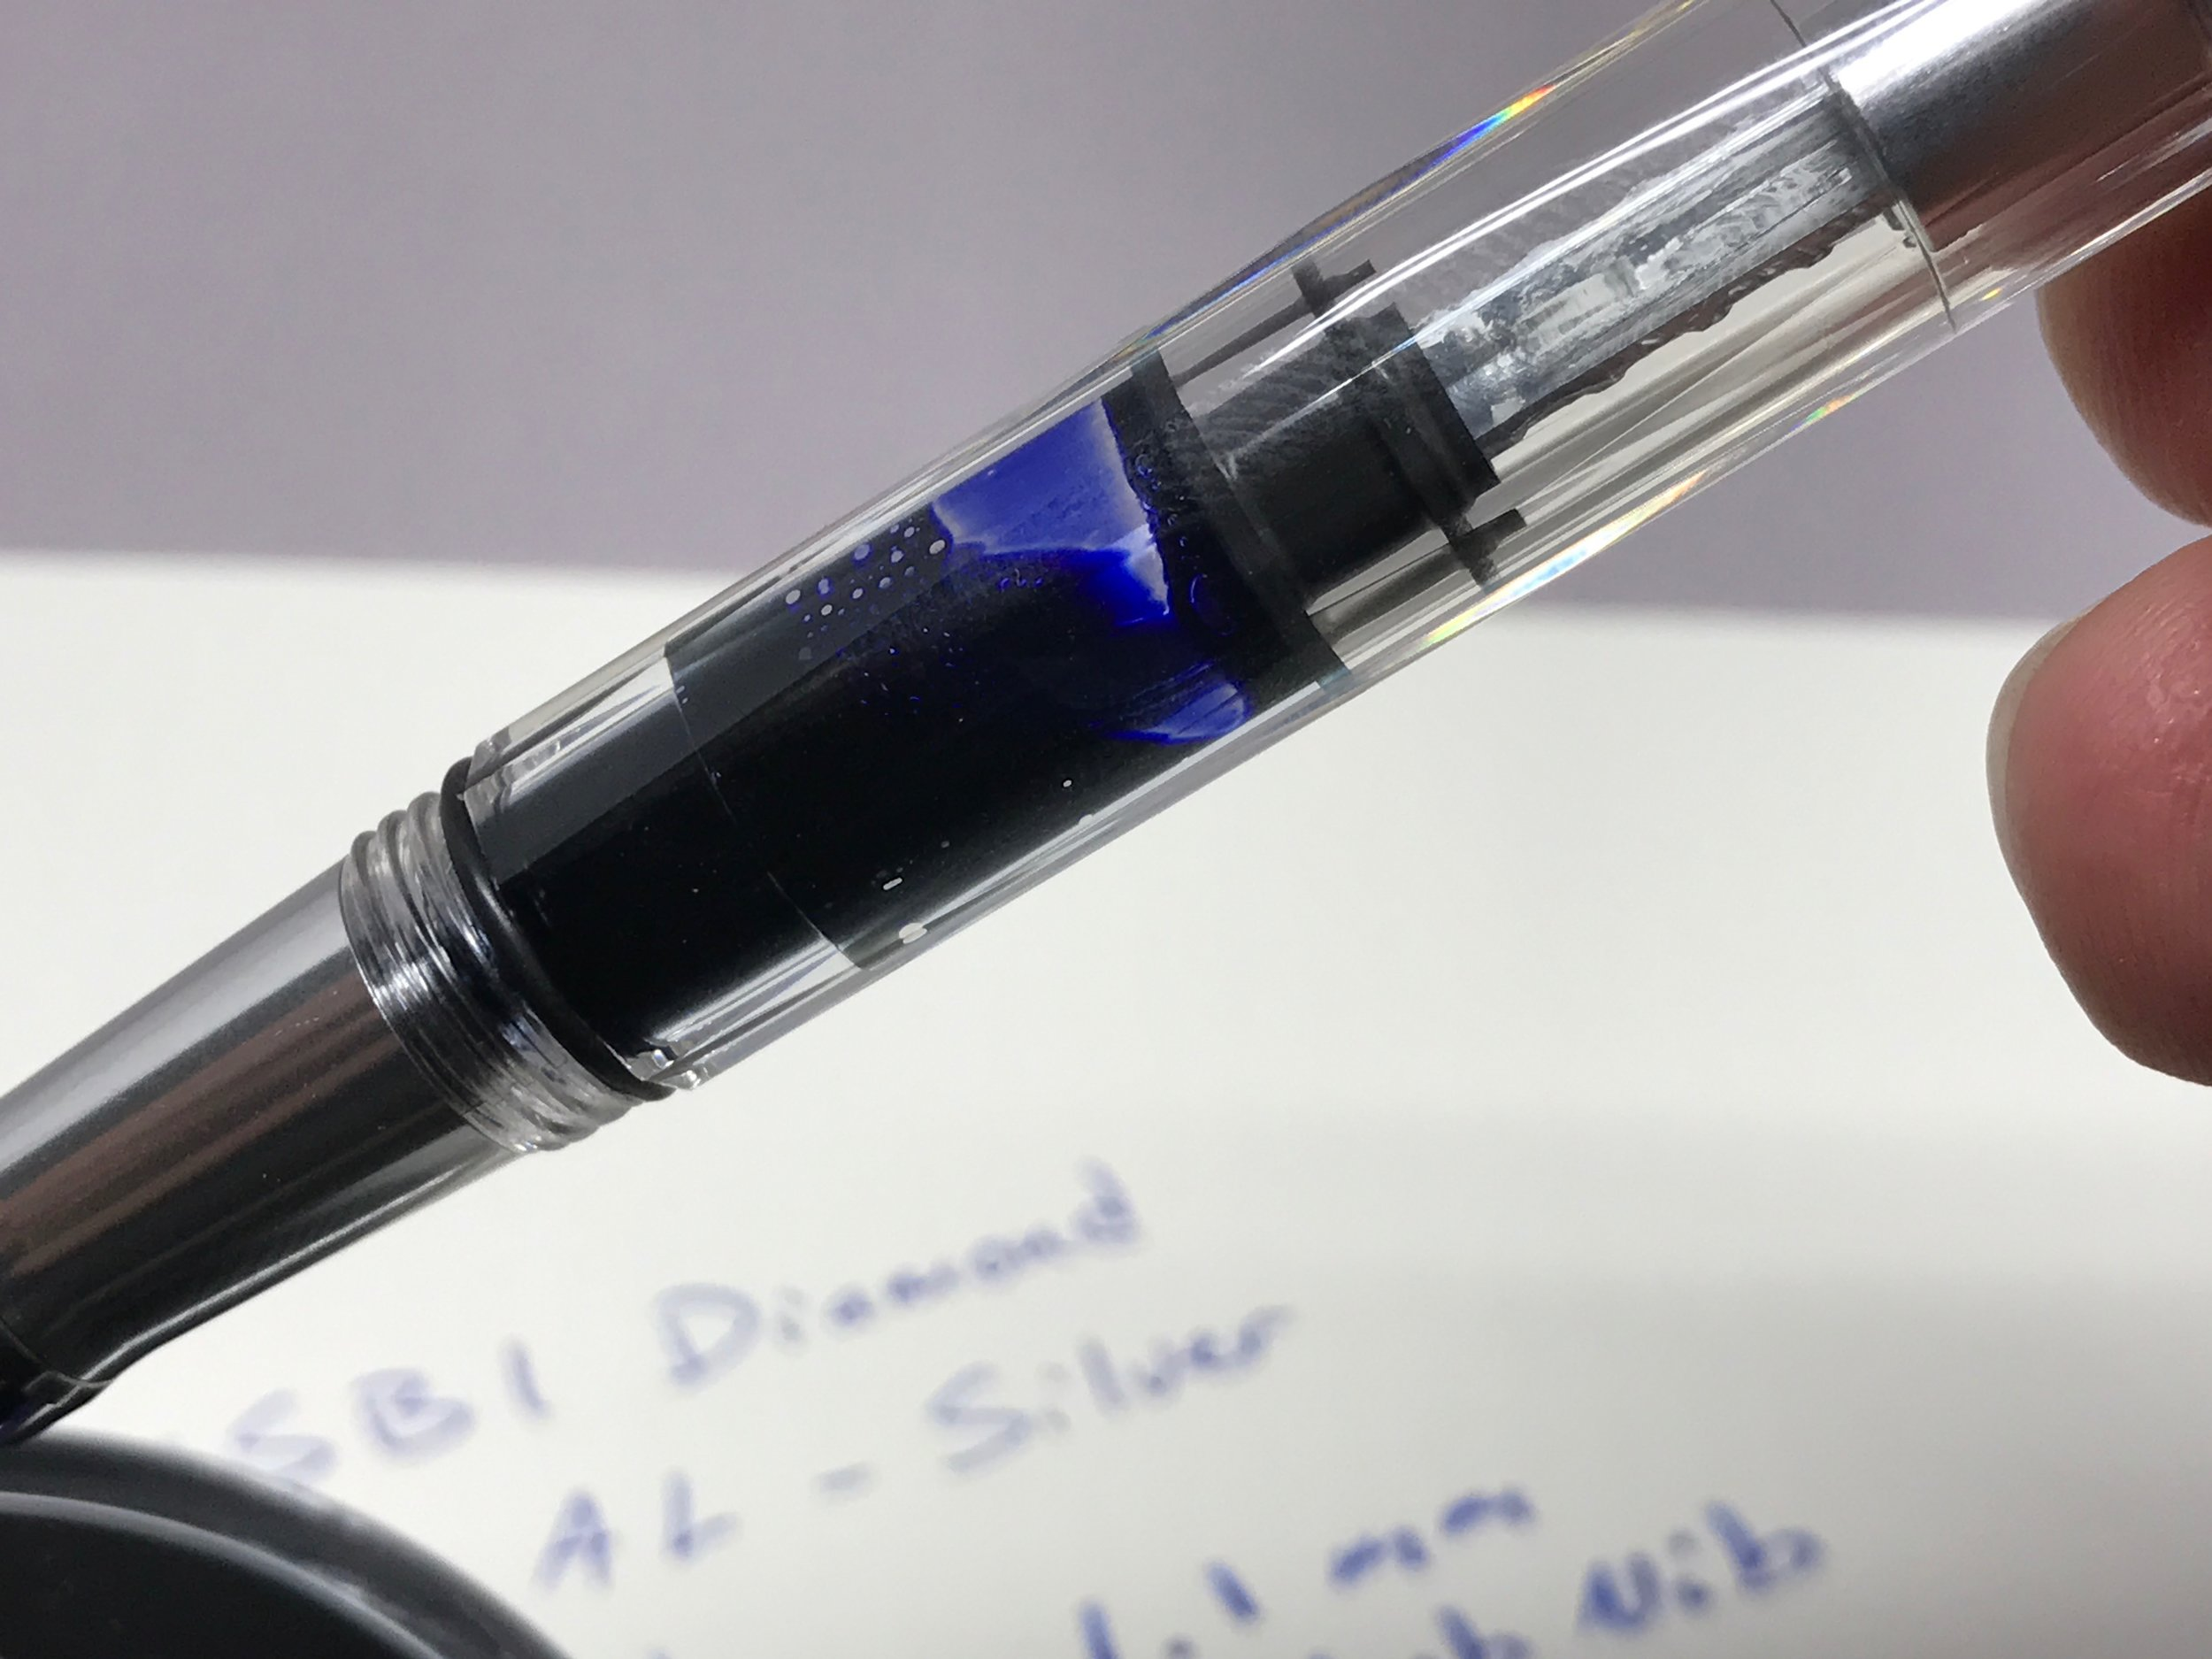 TWSBI-Diamond-580AL-26.jpg